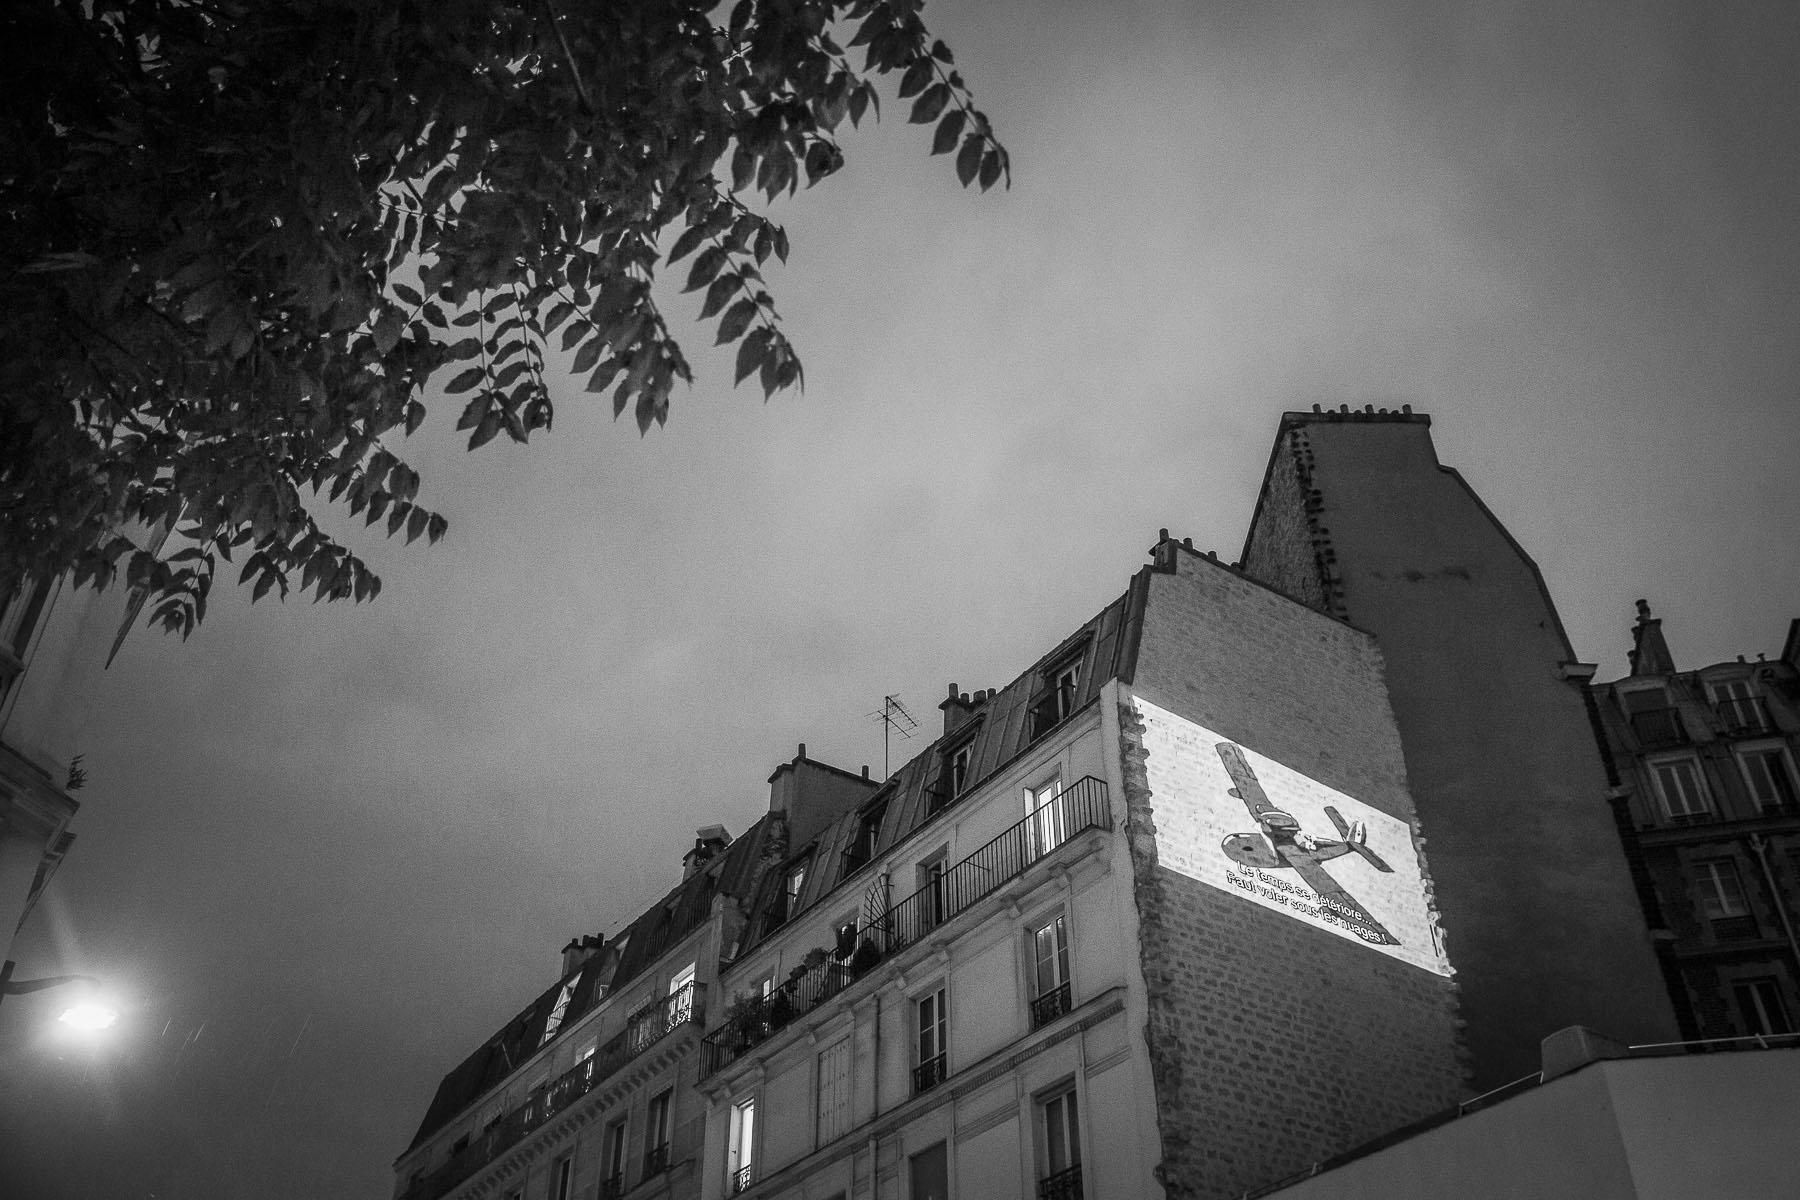 The association illegally occupying the La Clef {quote}art et essai{quote} moovie theater to prevent its disappearance projects a Friday night film on the wall overlooking the building. Rue Daubenton. May 2020